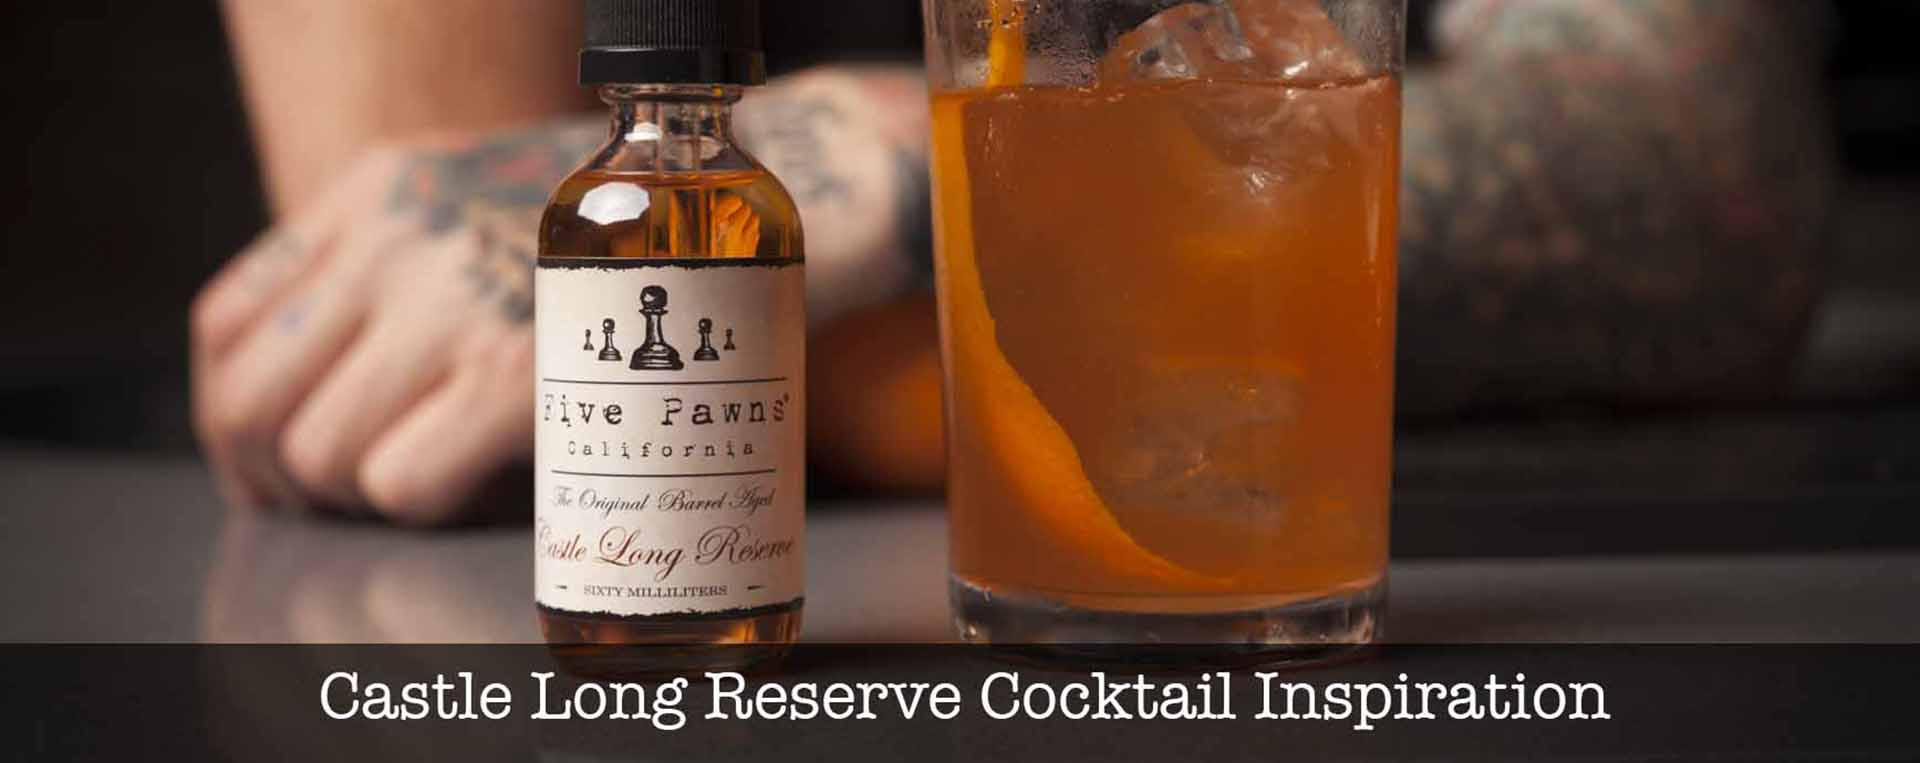 Castle Long Reserve Cocktail Inspiration